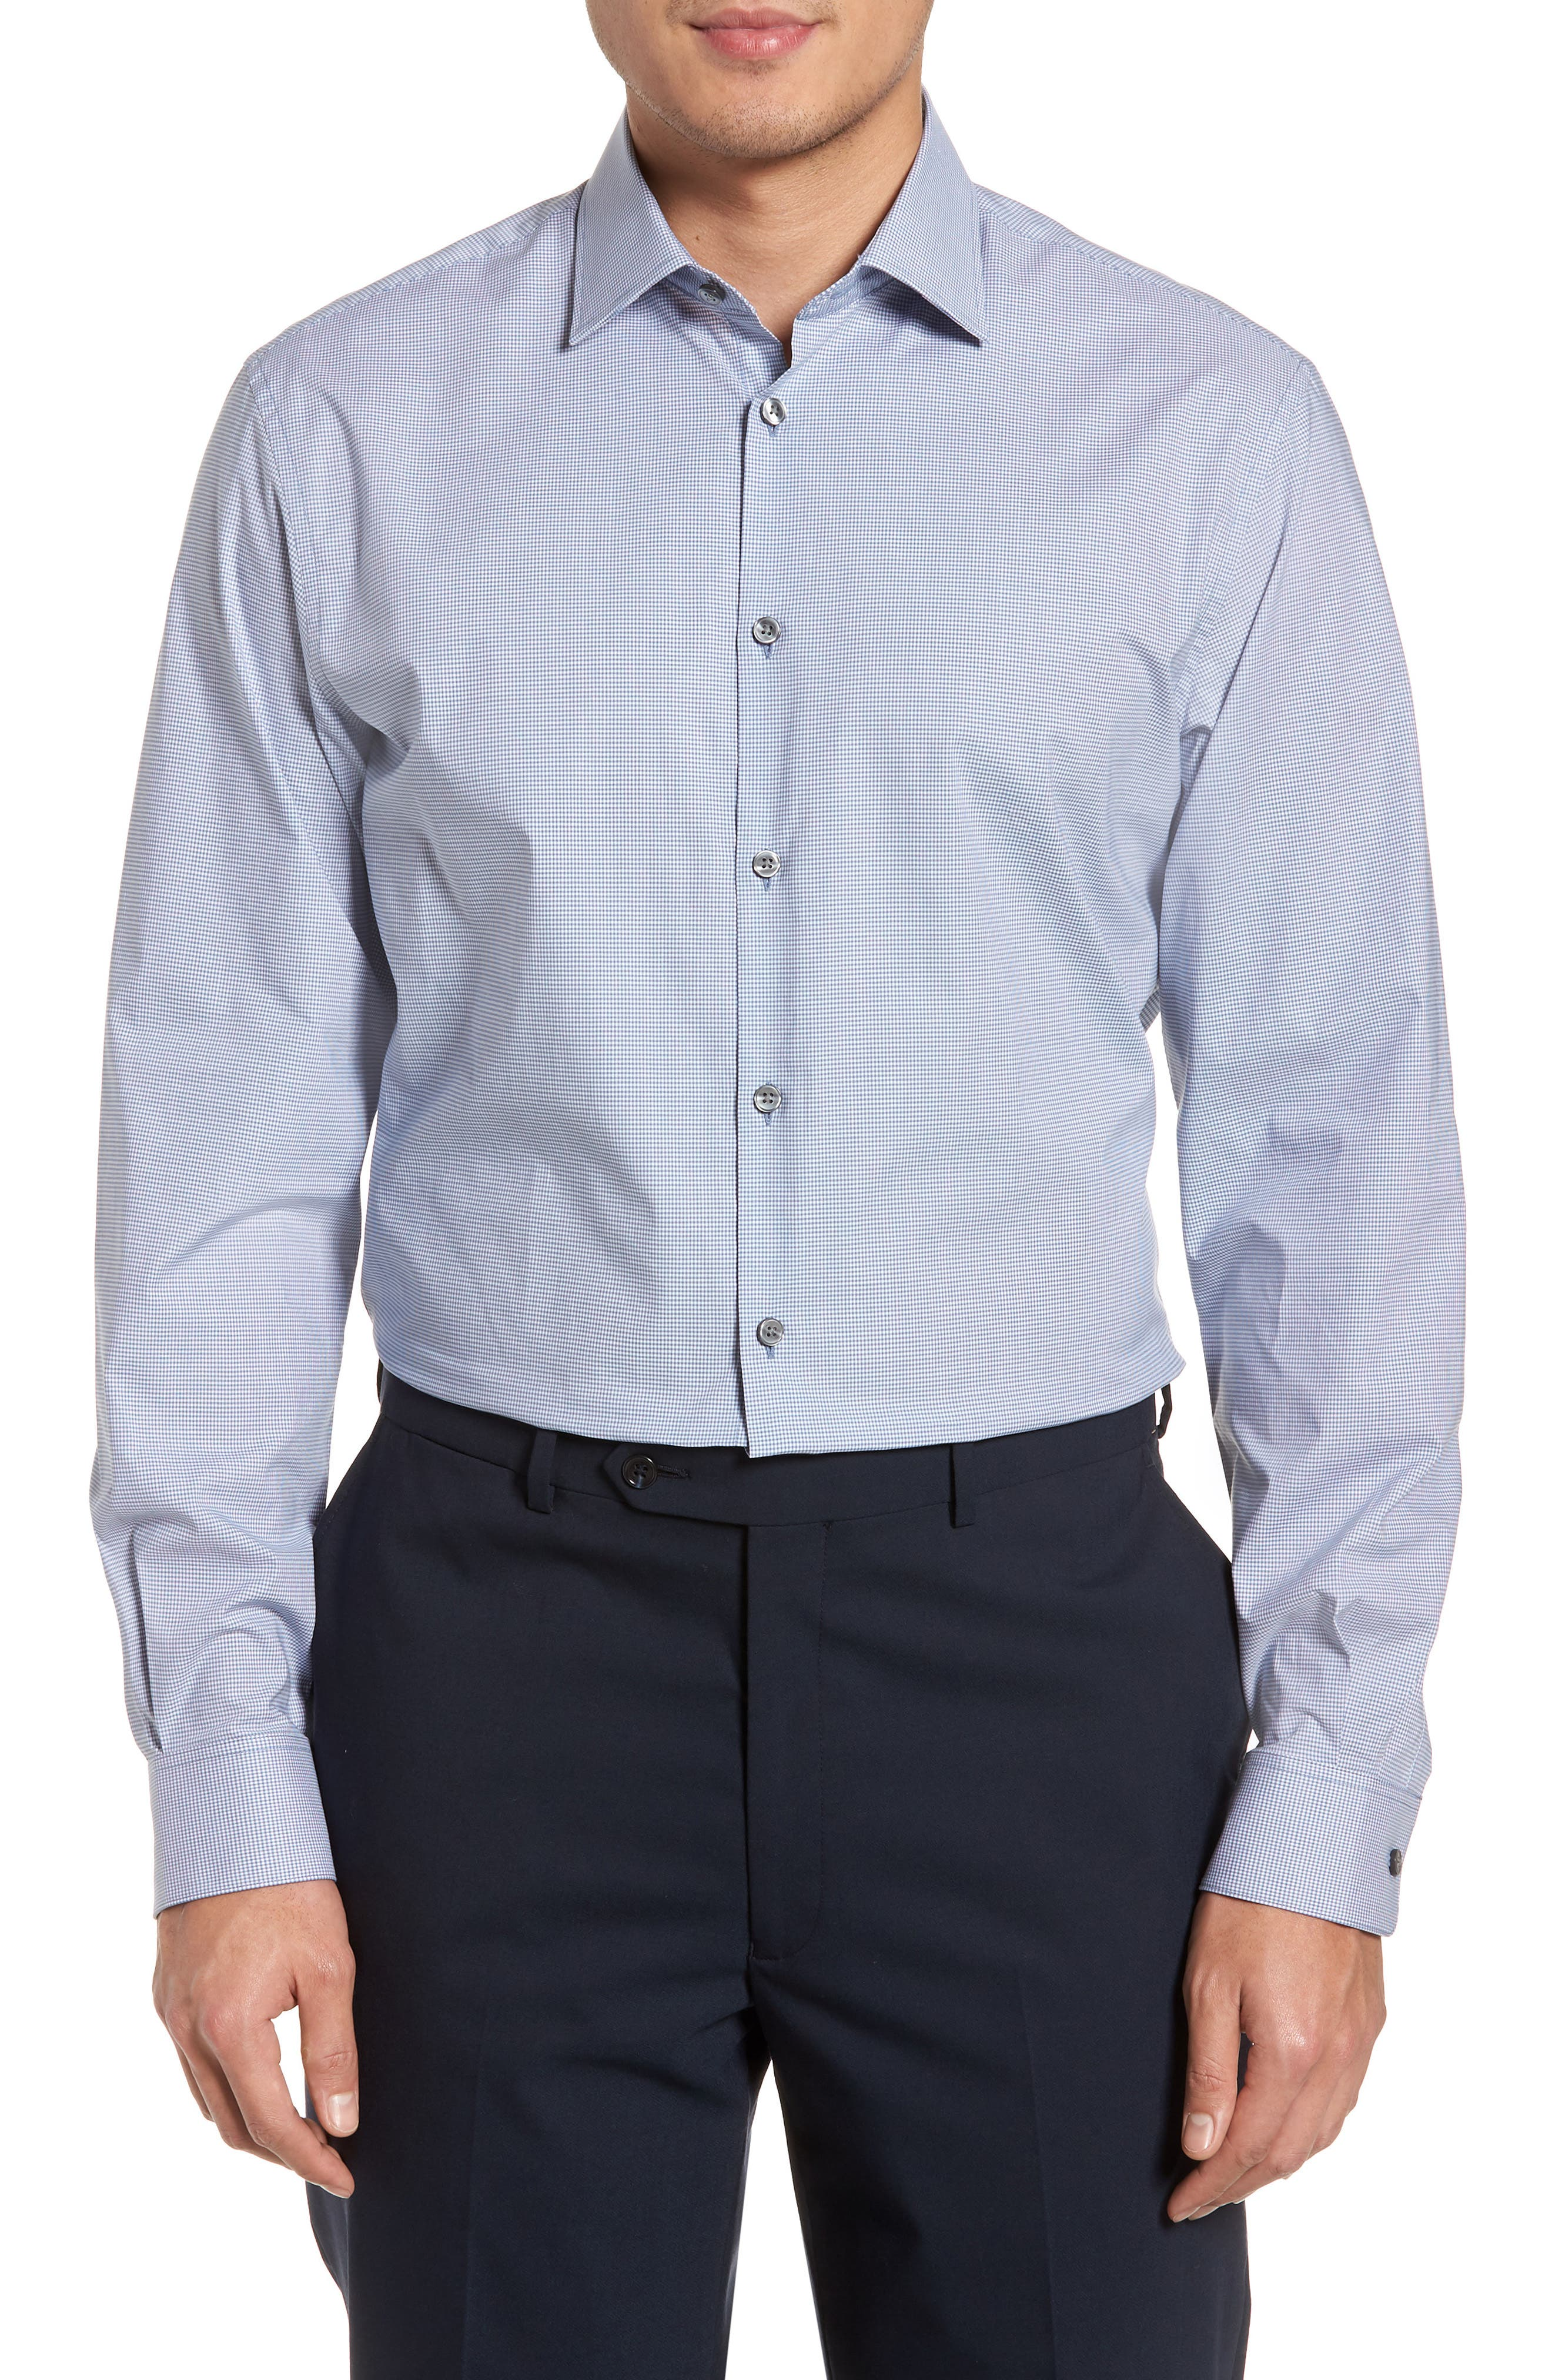 Regular Fit Stretch Microcheck Dress Shirt,                             Main thumbnail 1, color,                             Dusted Blue